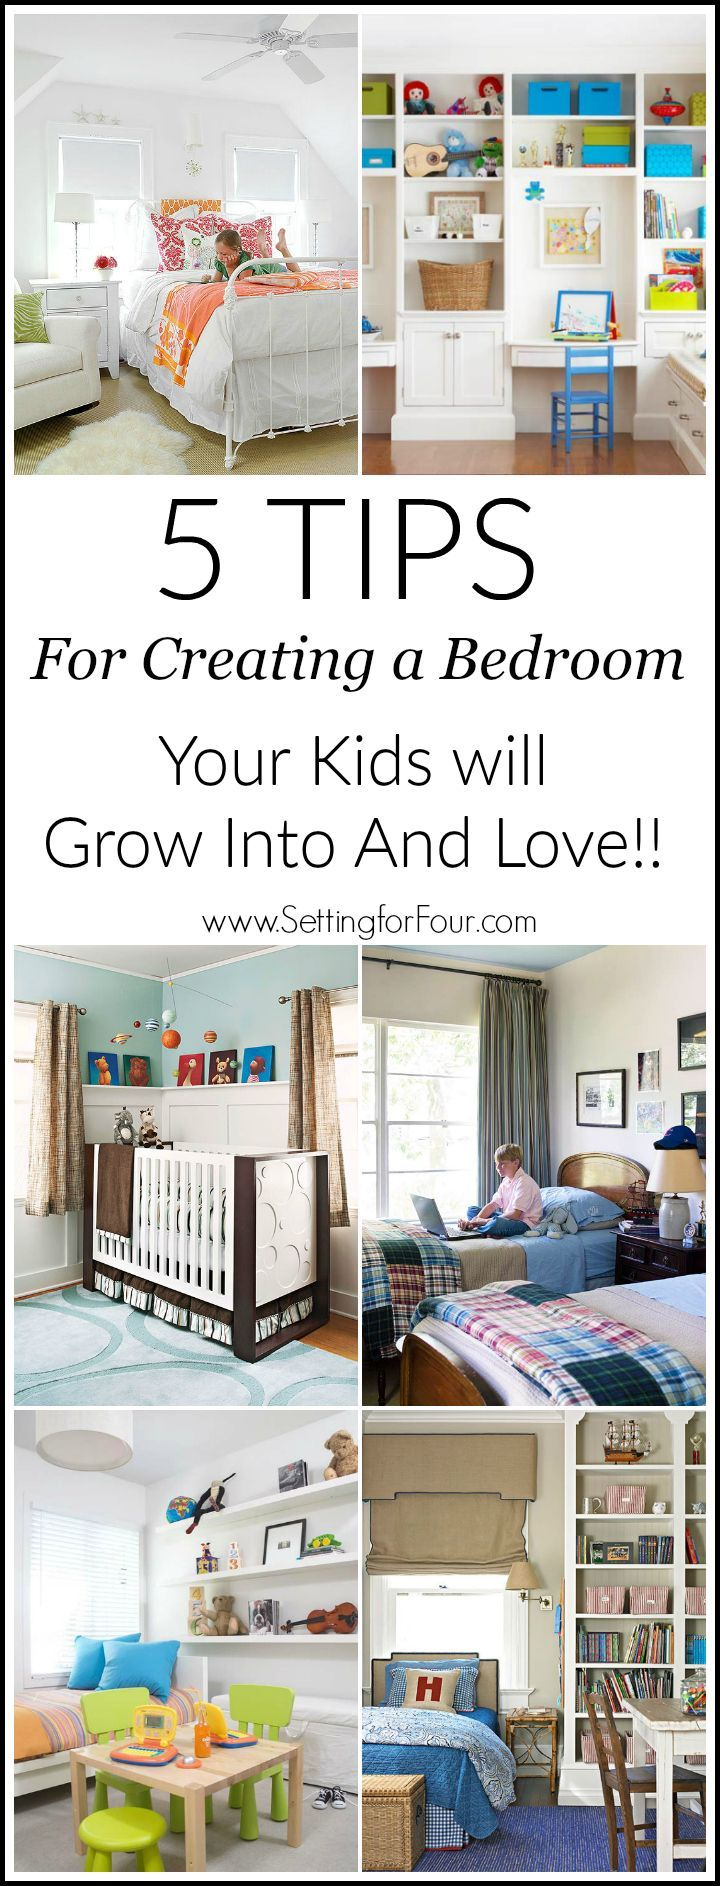 Home Decor Bedroom Kids 121 best home decor- kid's rooms images on pinterest | bedroom